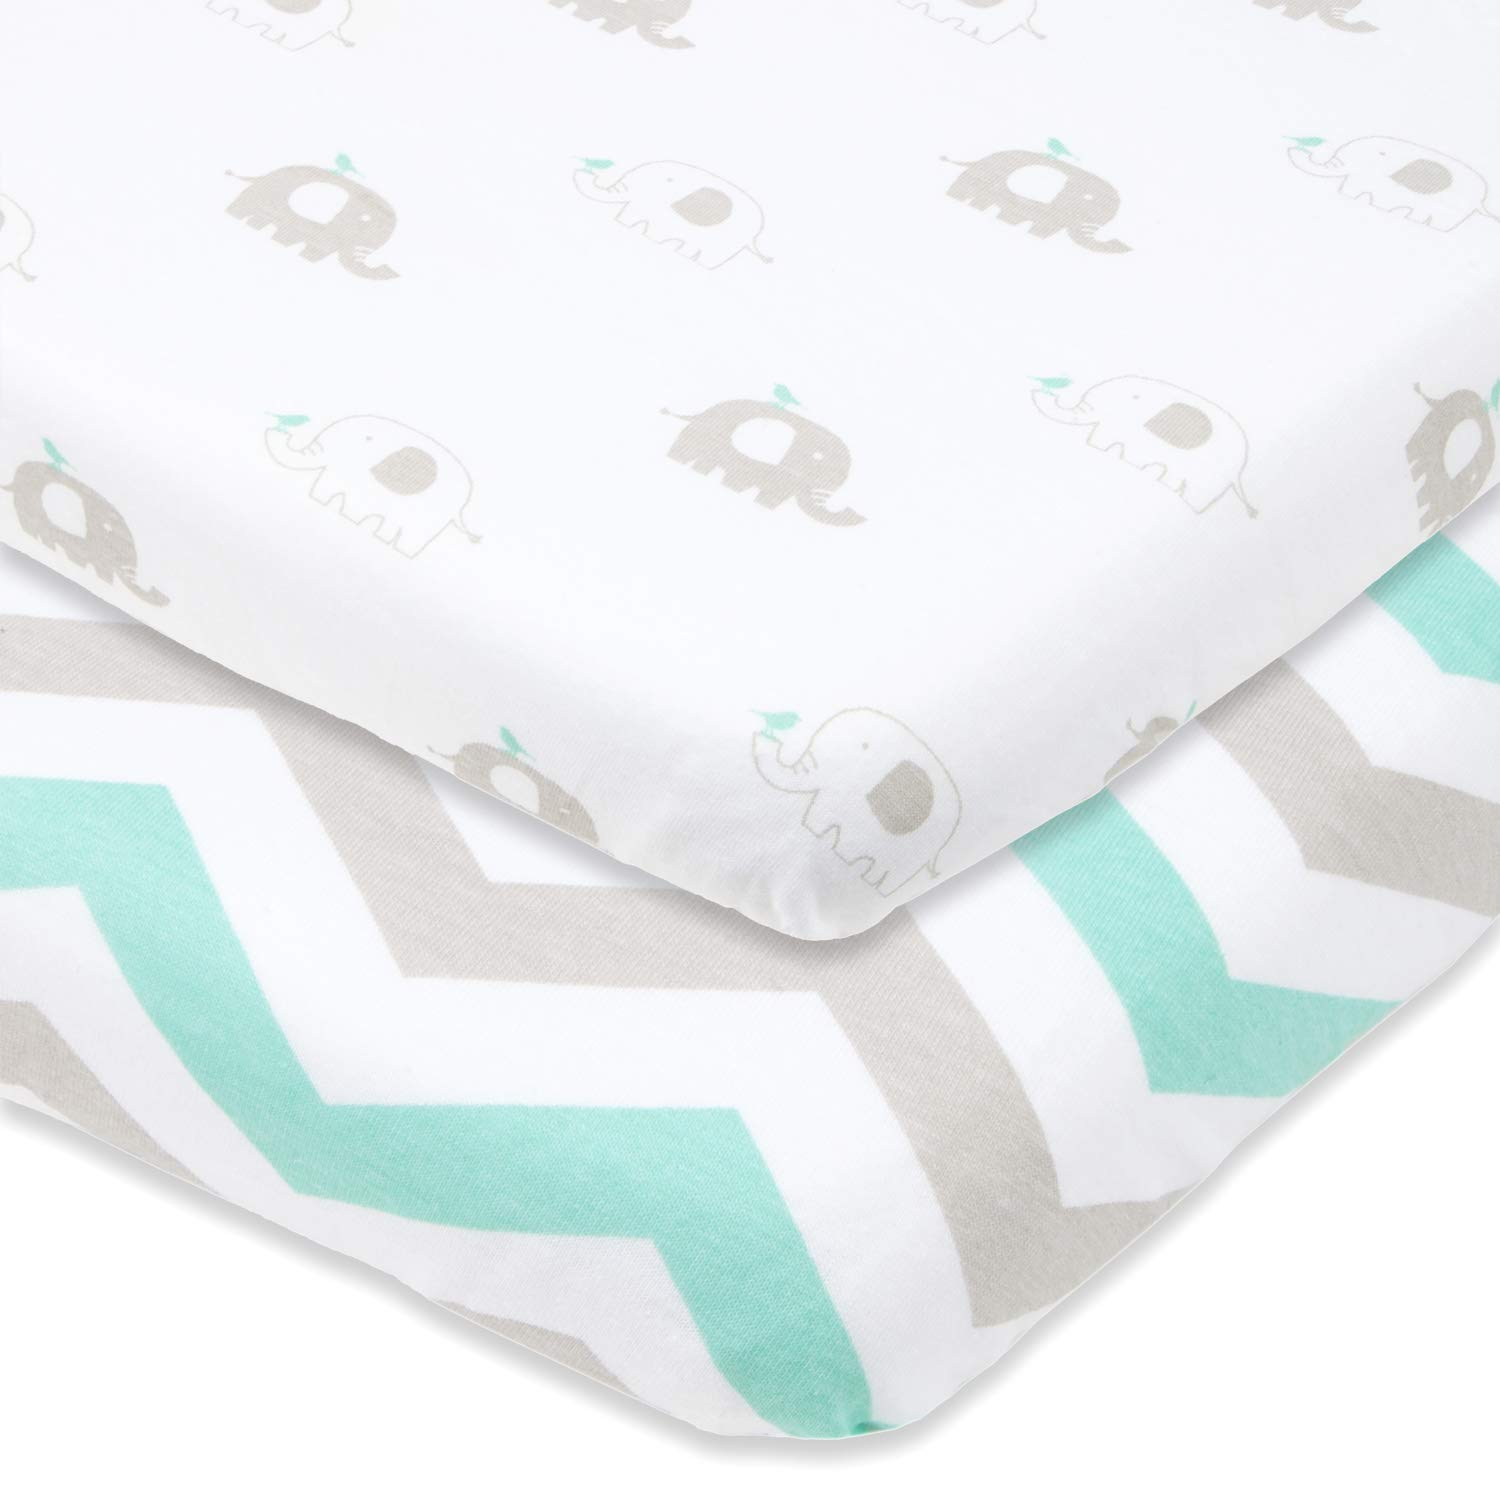 Lovely Print 39/×27/×5 Fitted Baby Portable Mini Cribs Breathable Thick Play Yard Playpen Sheets Mini Crib Sheet,Pack n Play Sheet Quilted,Crib Mattress pad Cover Graco Play Yards and Foldable Mattresses Pack and Play Pad